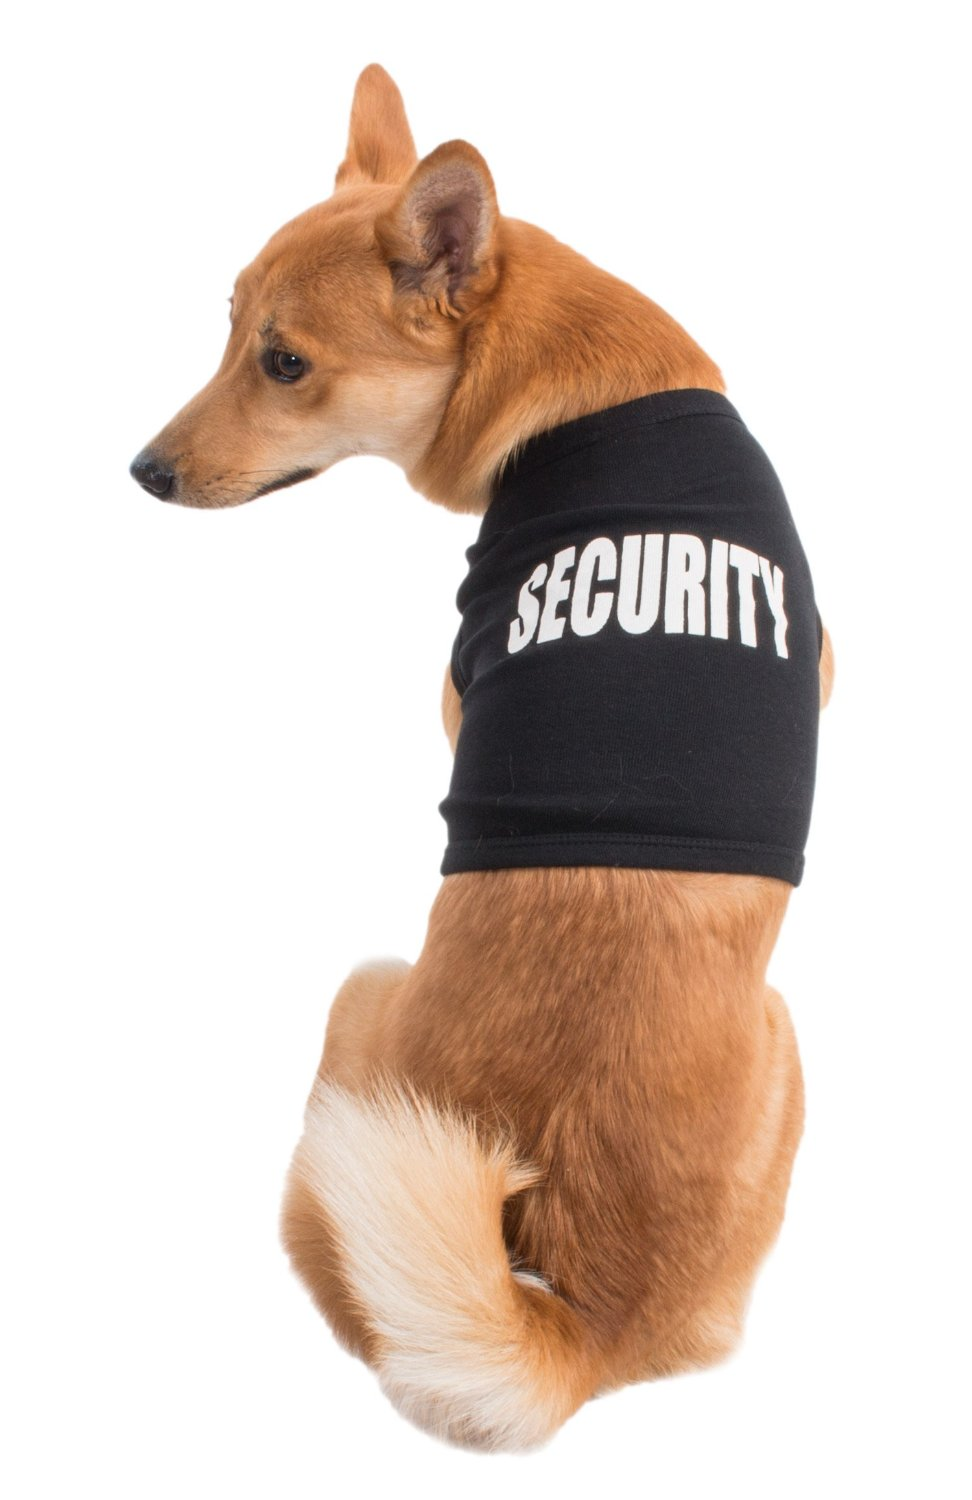 security shirt for dogs